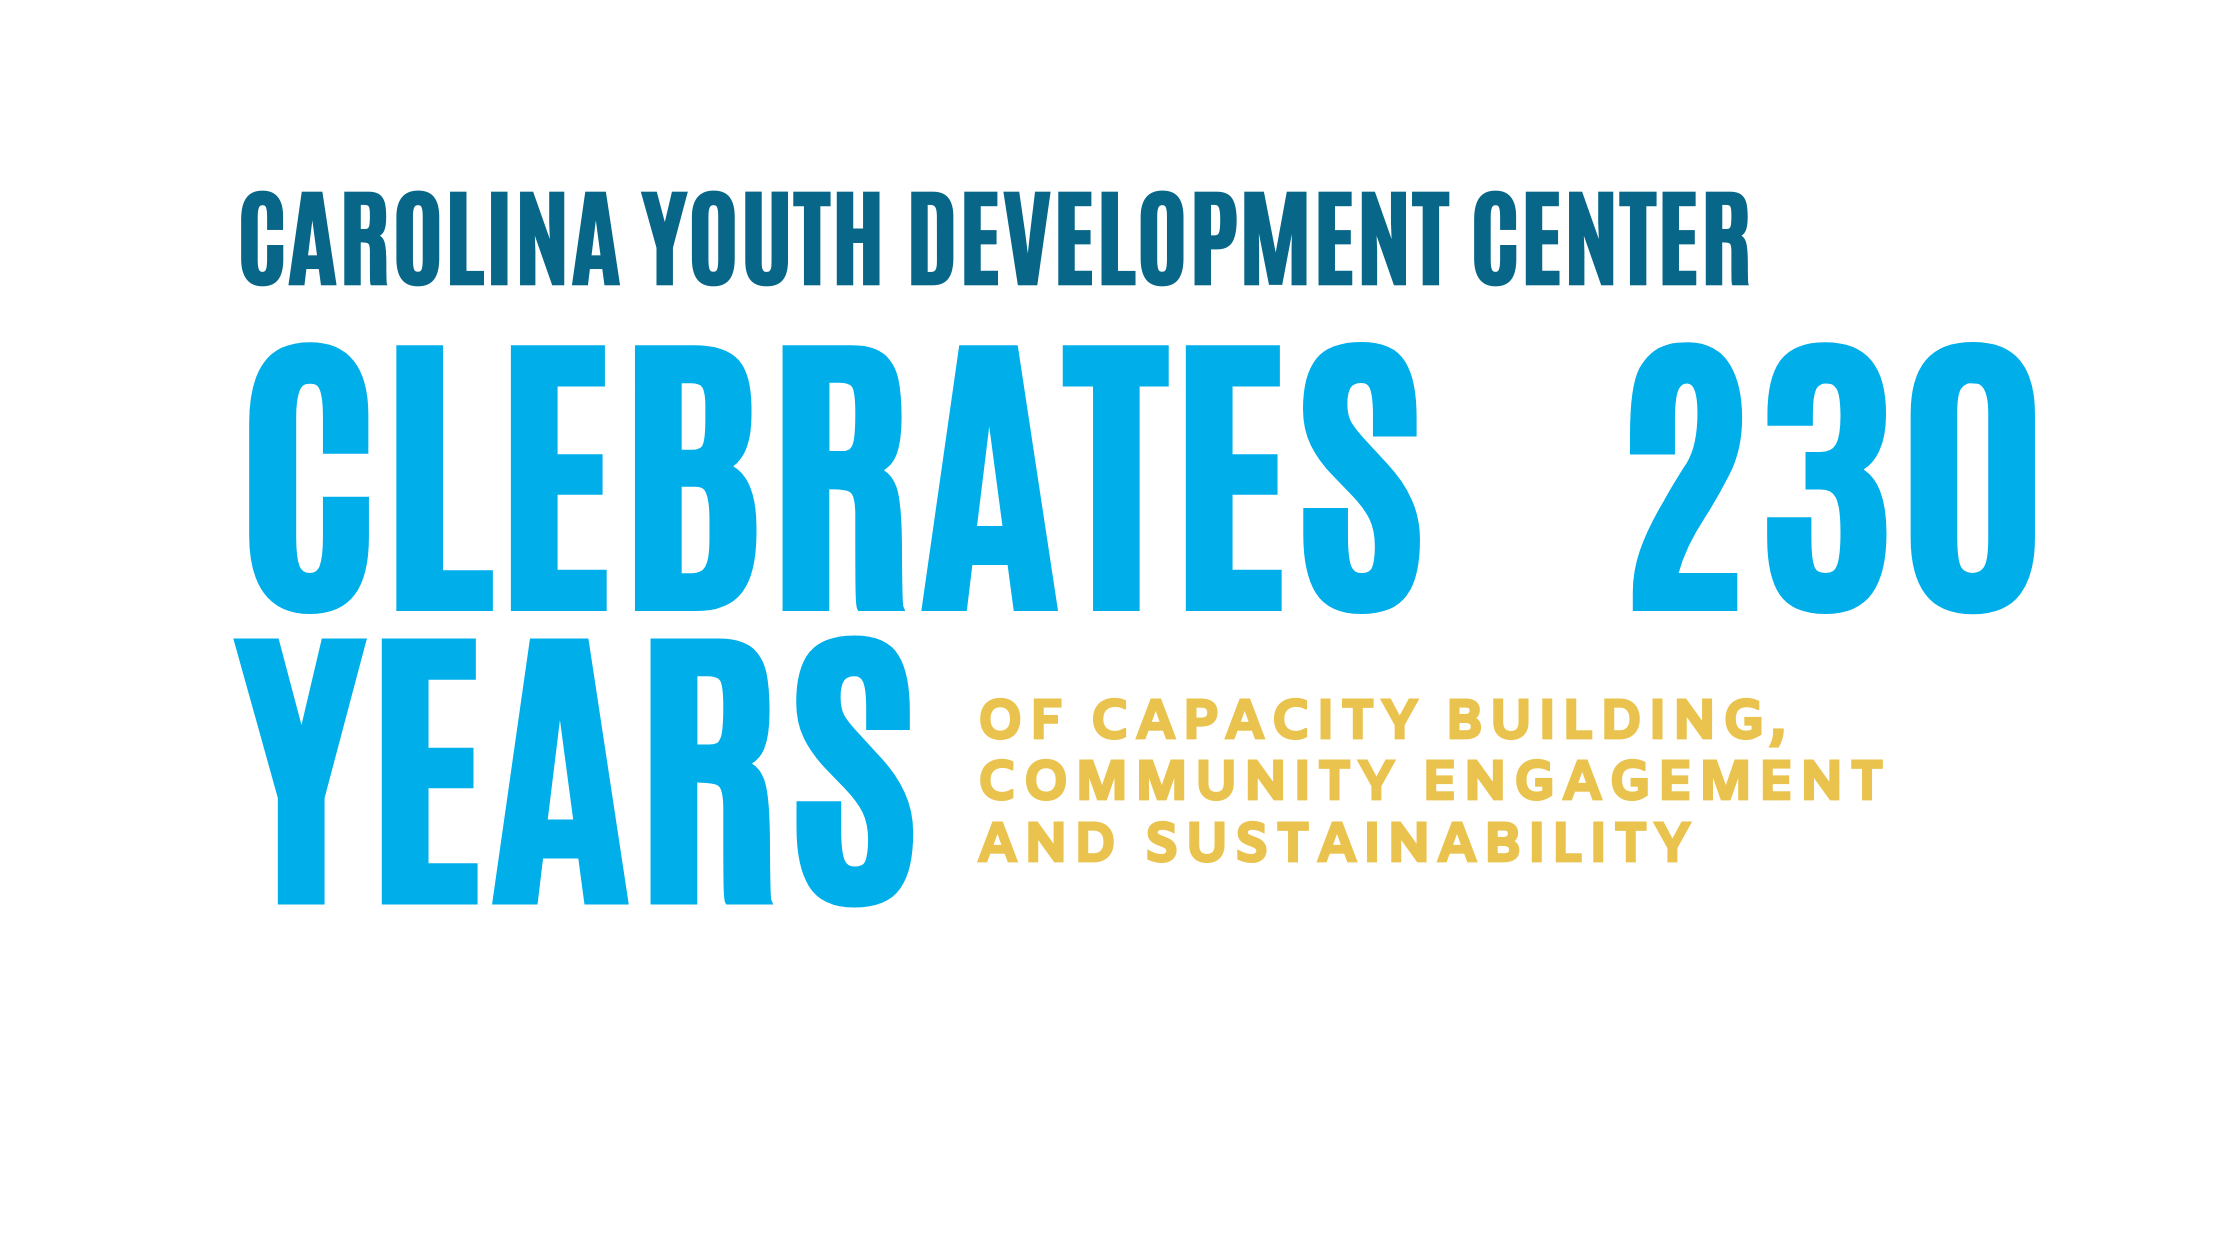 230 Years of Capacity Building, Community Engagement, and Sustainability